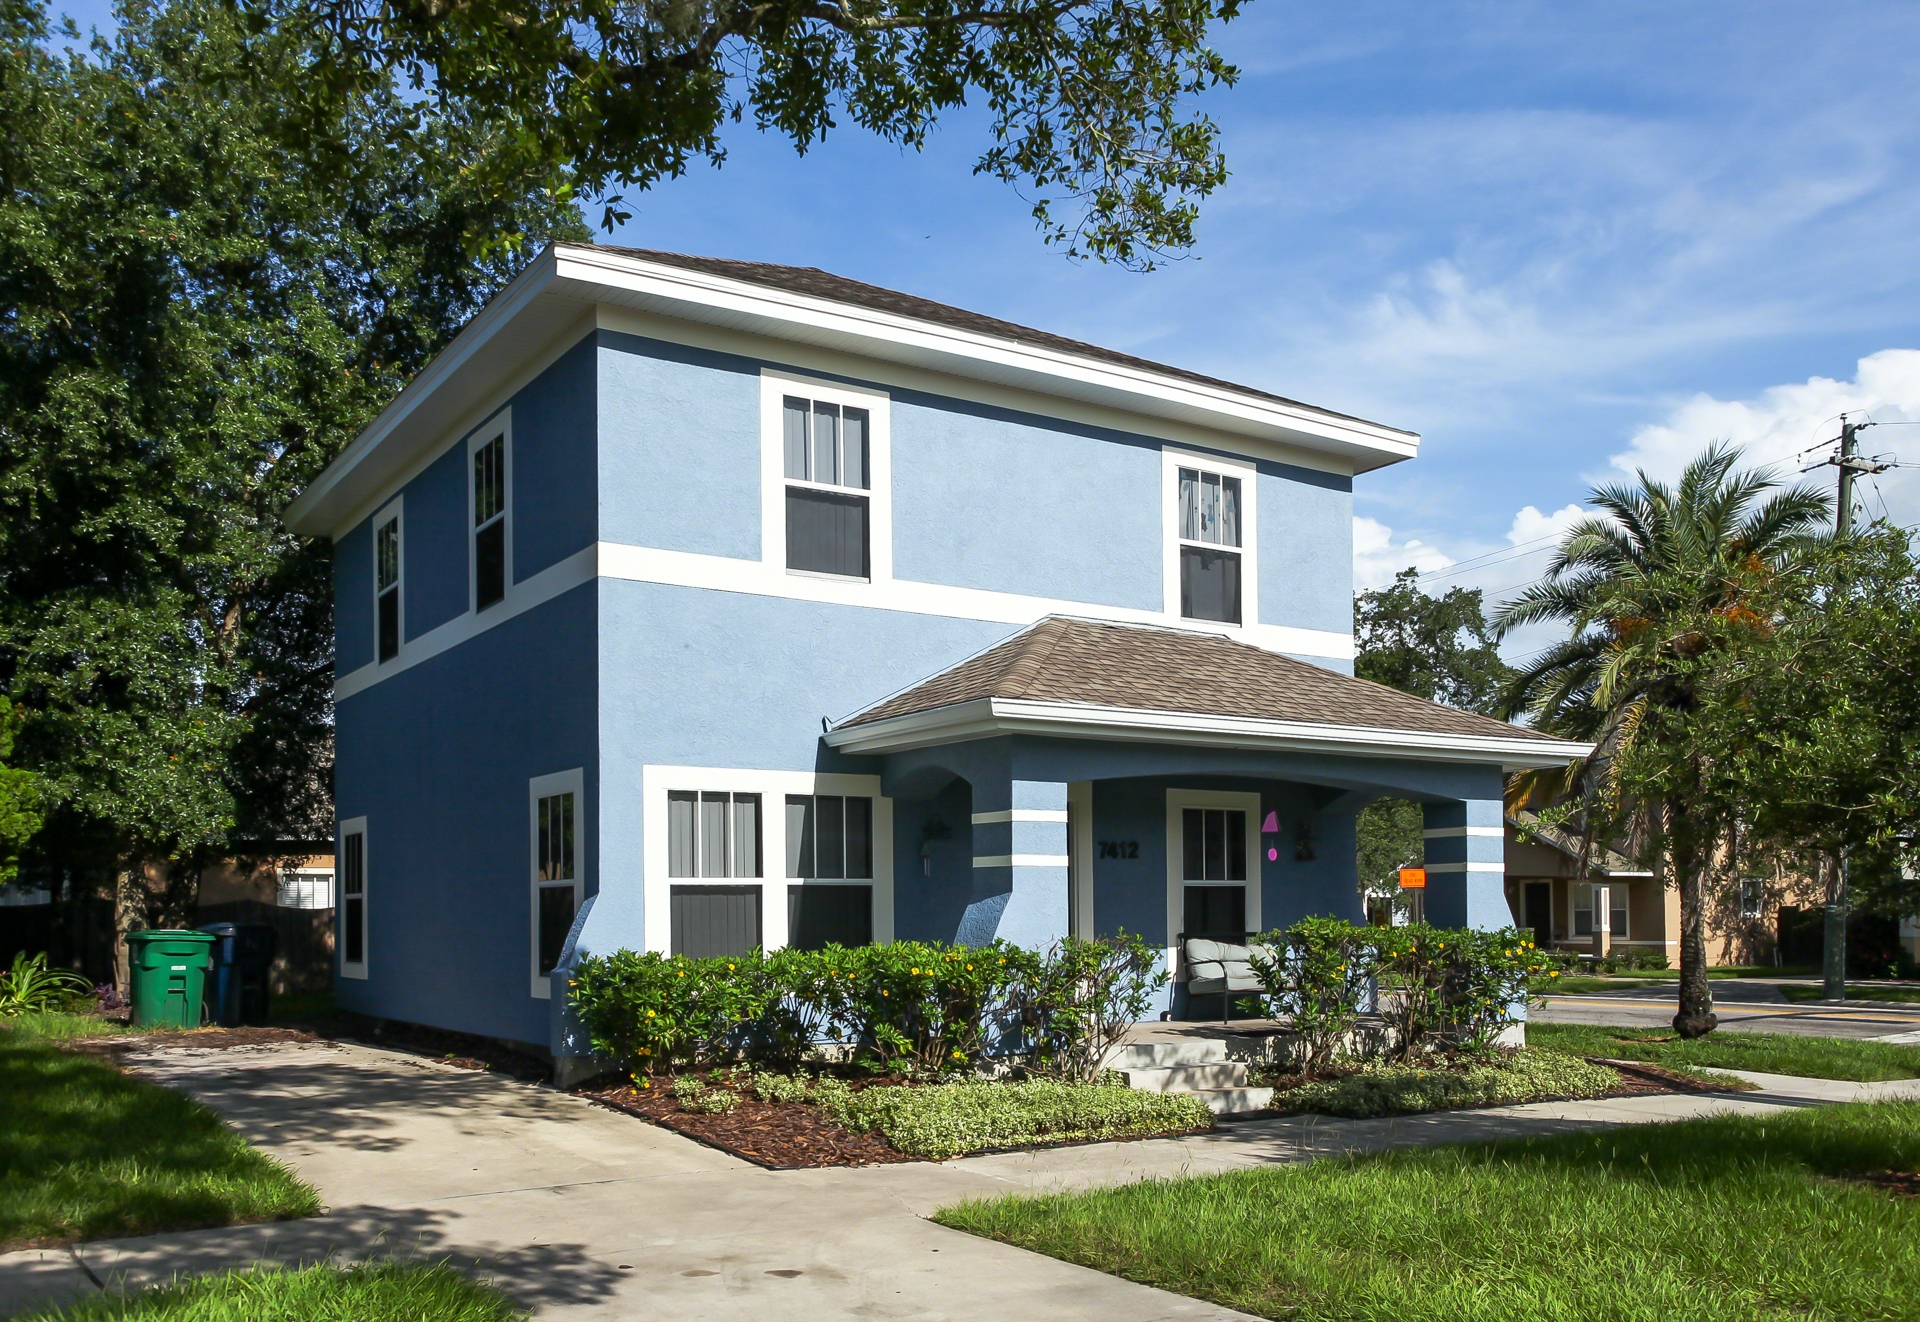 Oaks At Riverview - Tampa, FL Apartments for rent